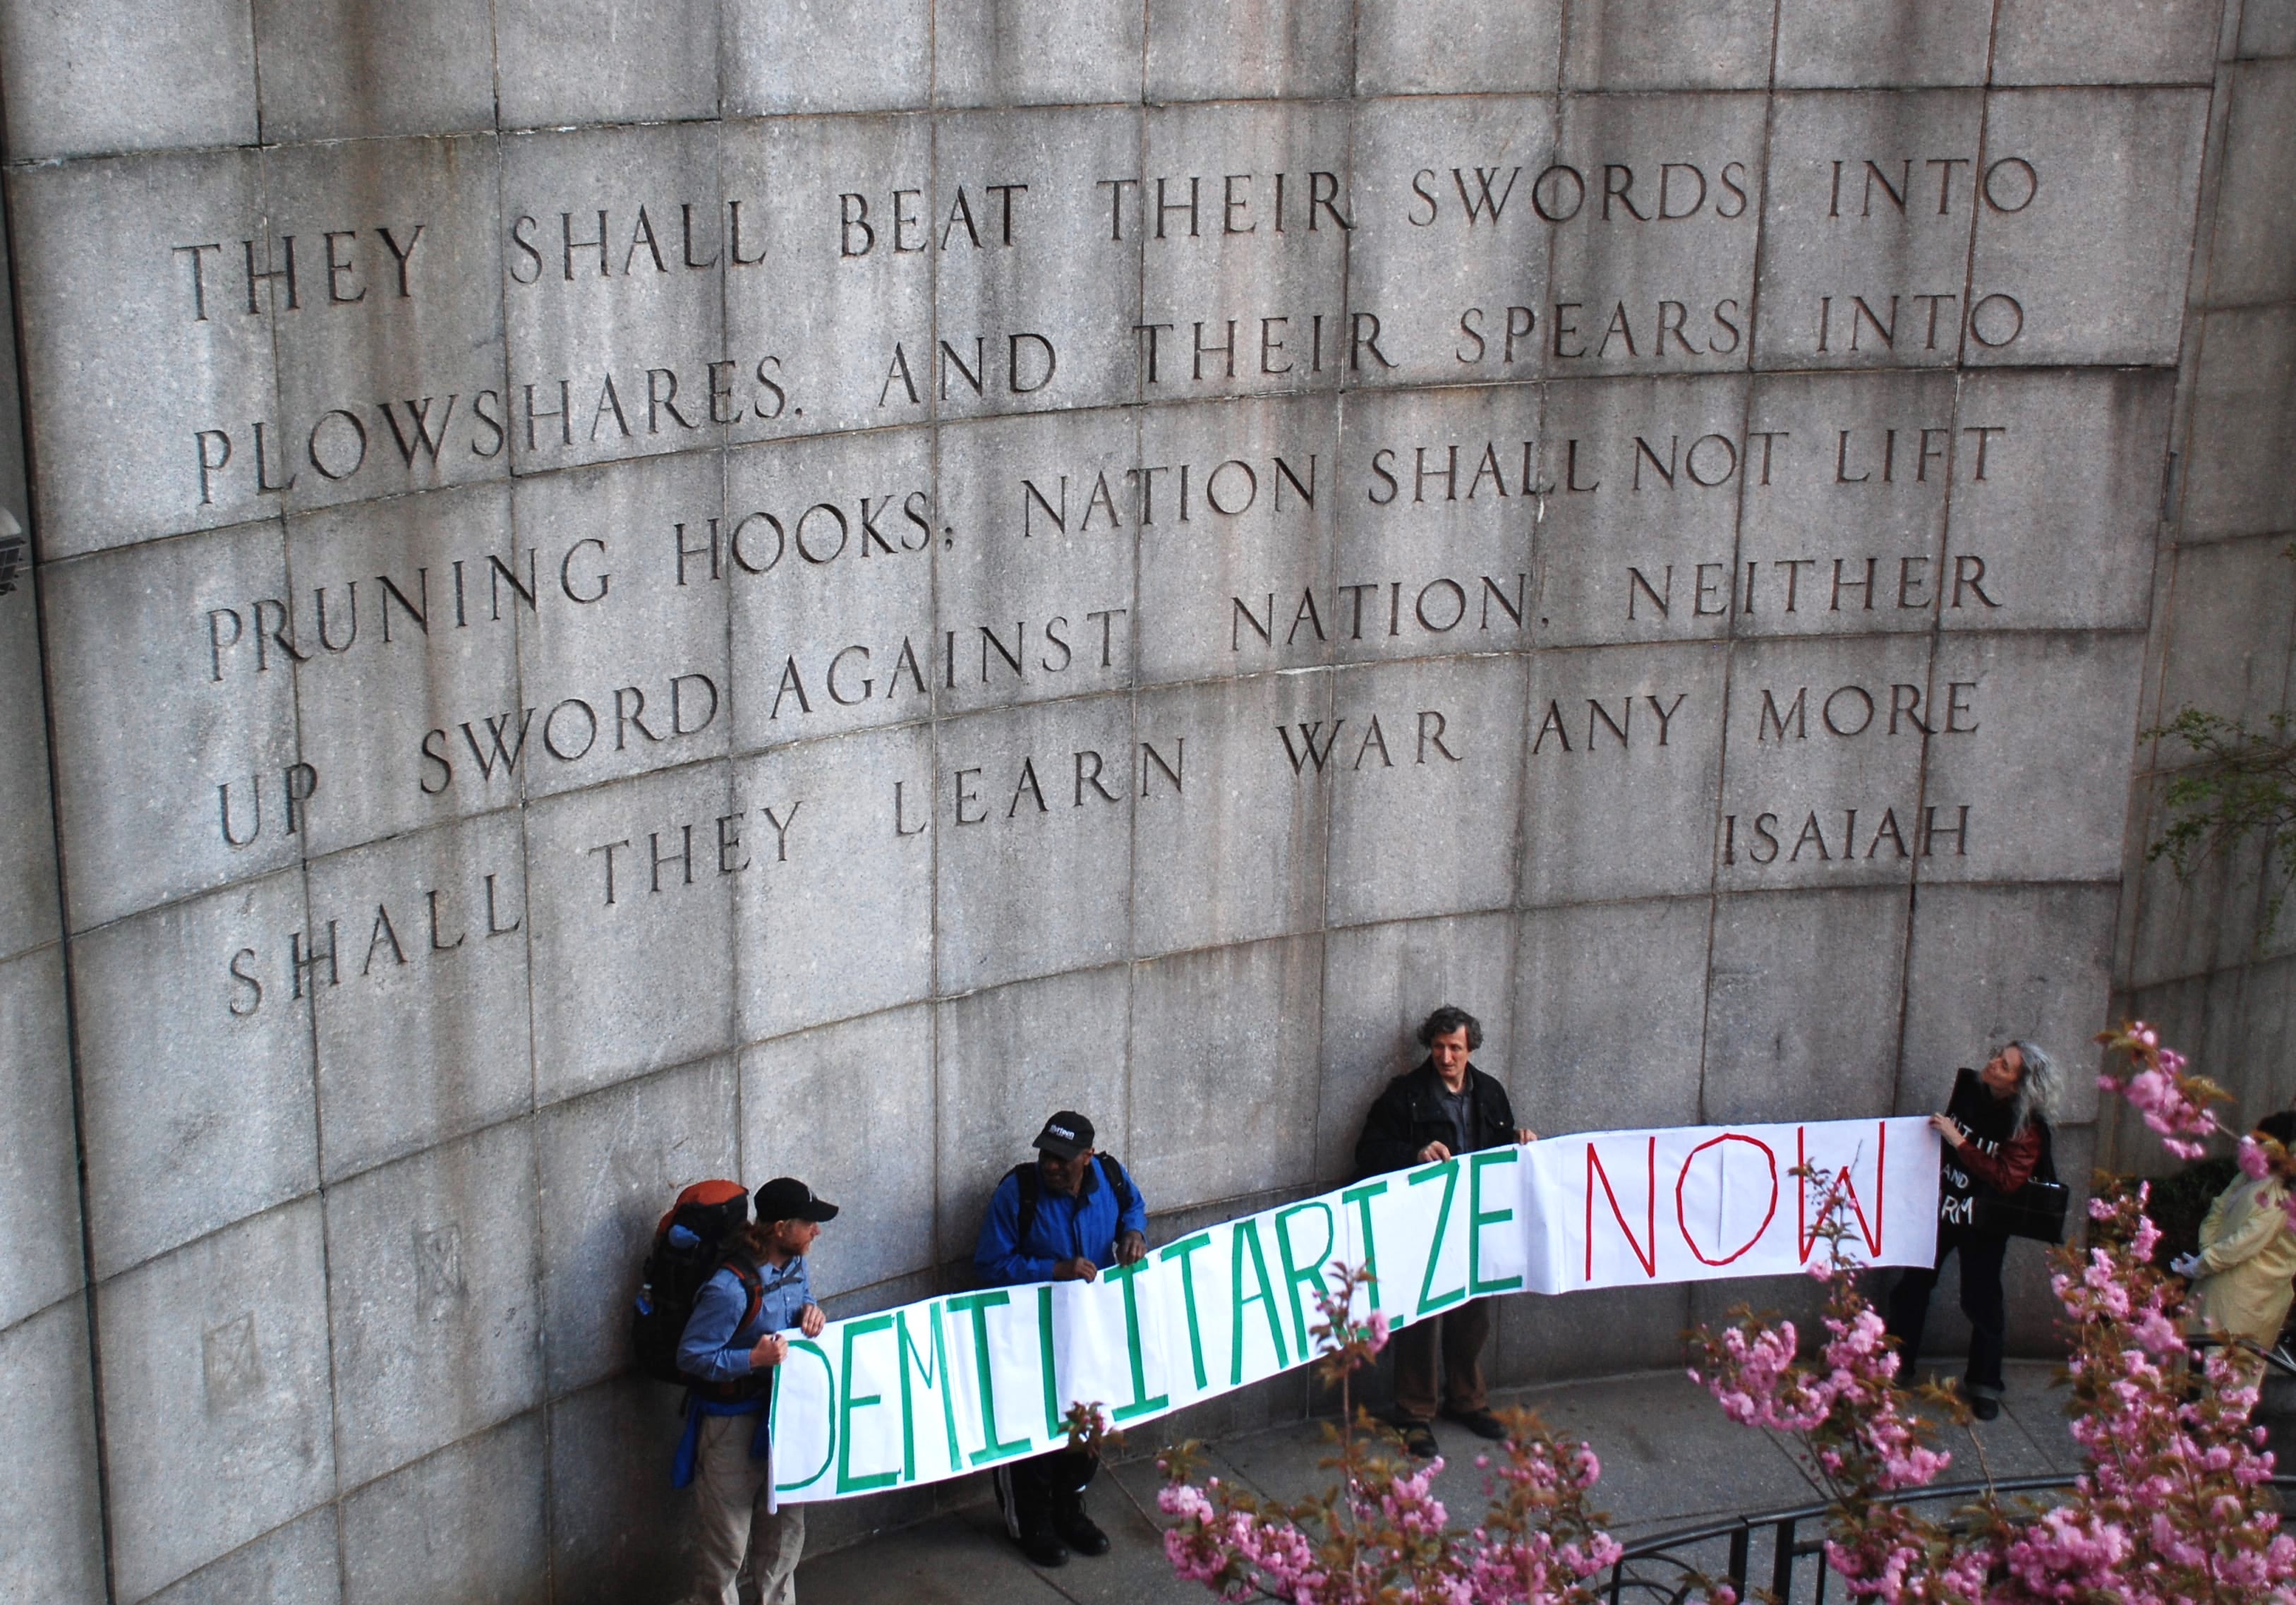 Isaiah Wall, across from the United Nations, New York (photo by Leonard Eiger)